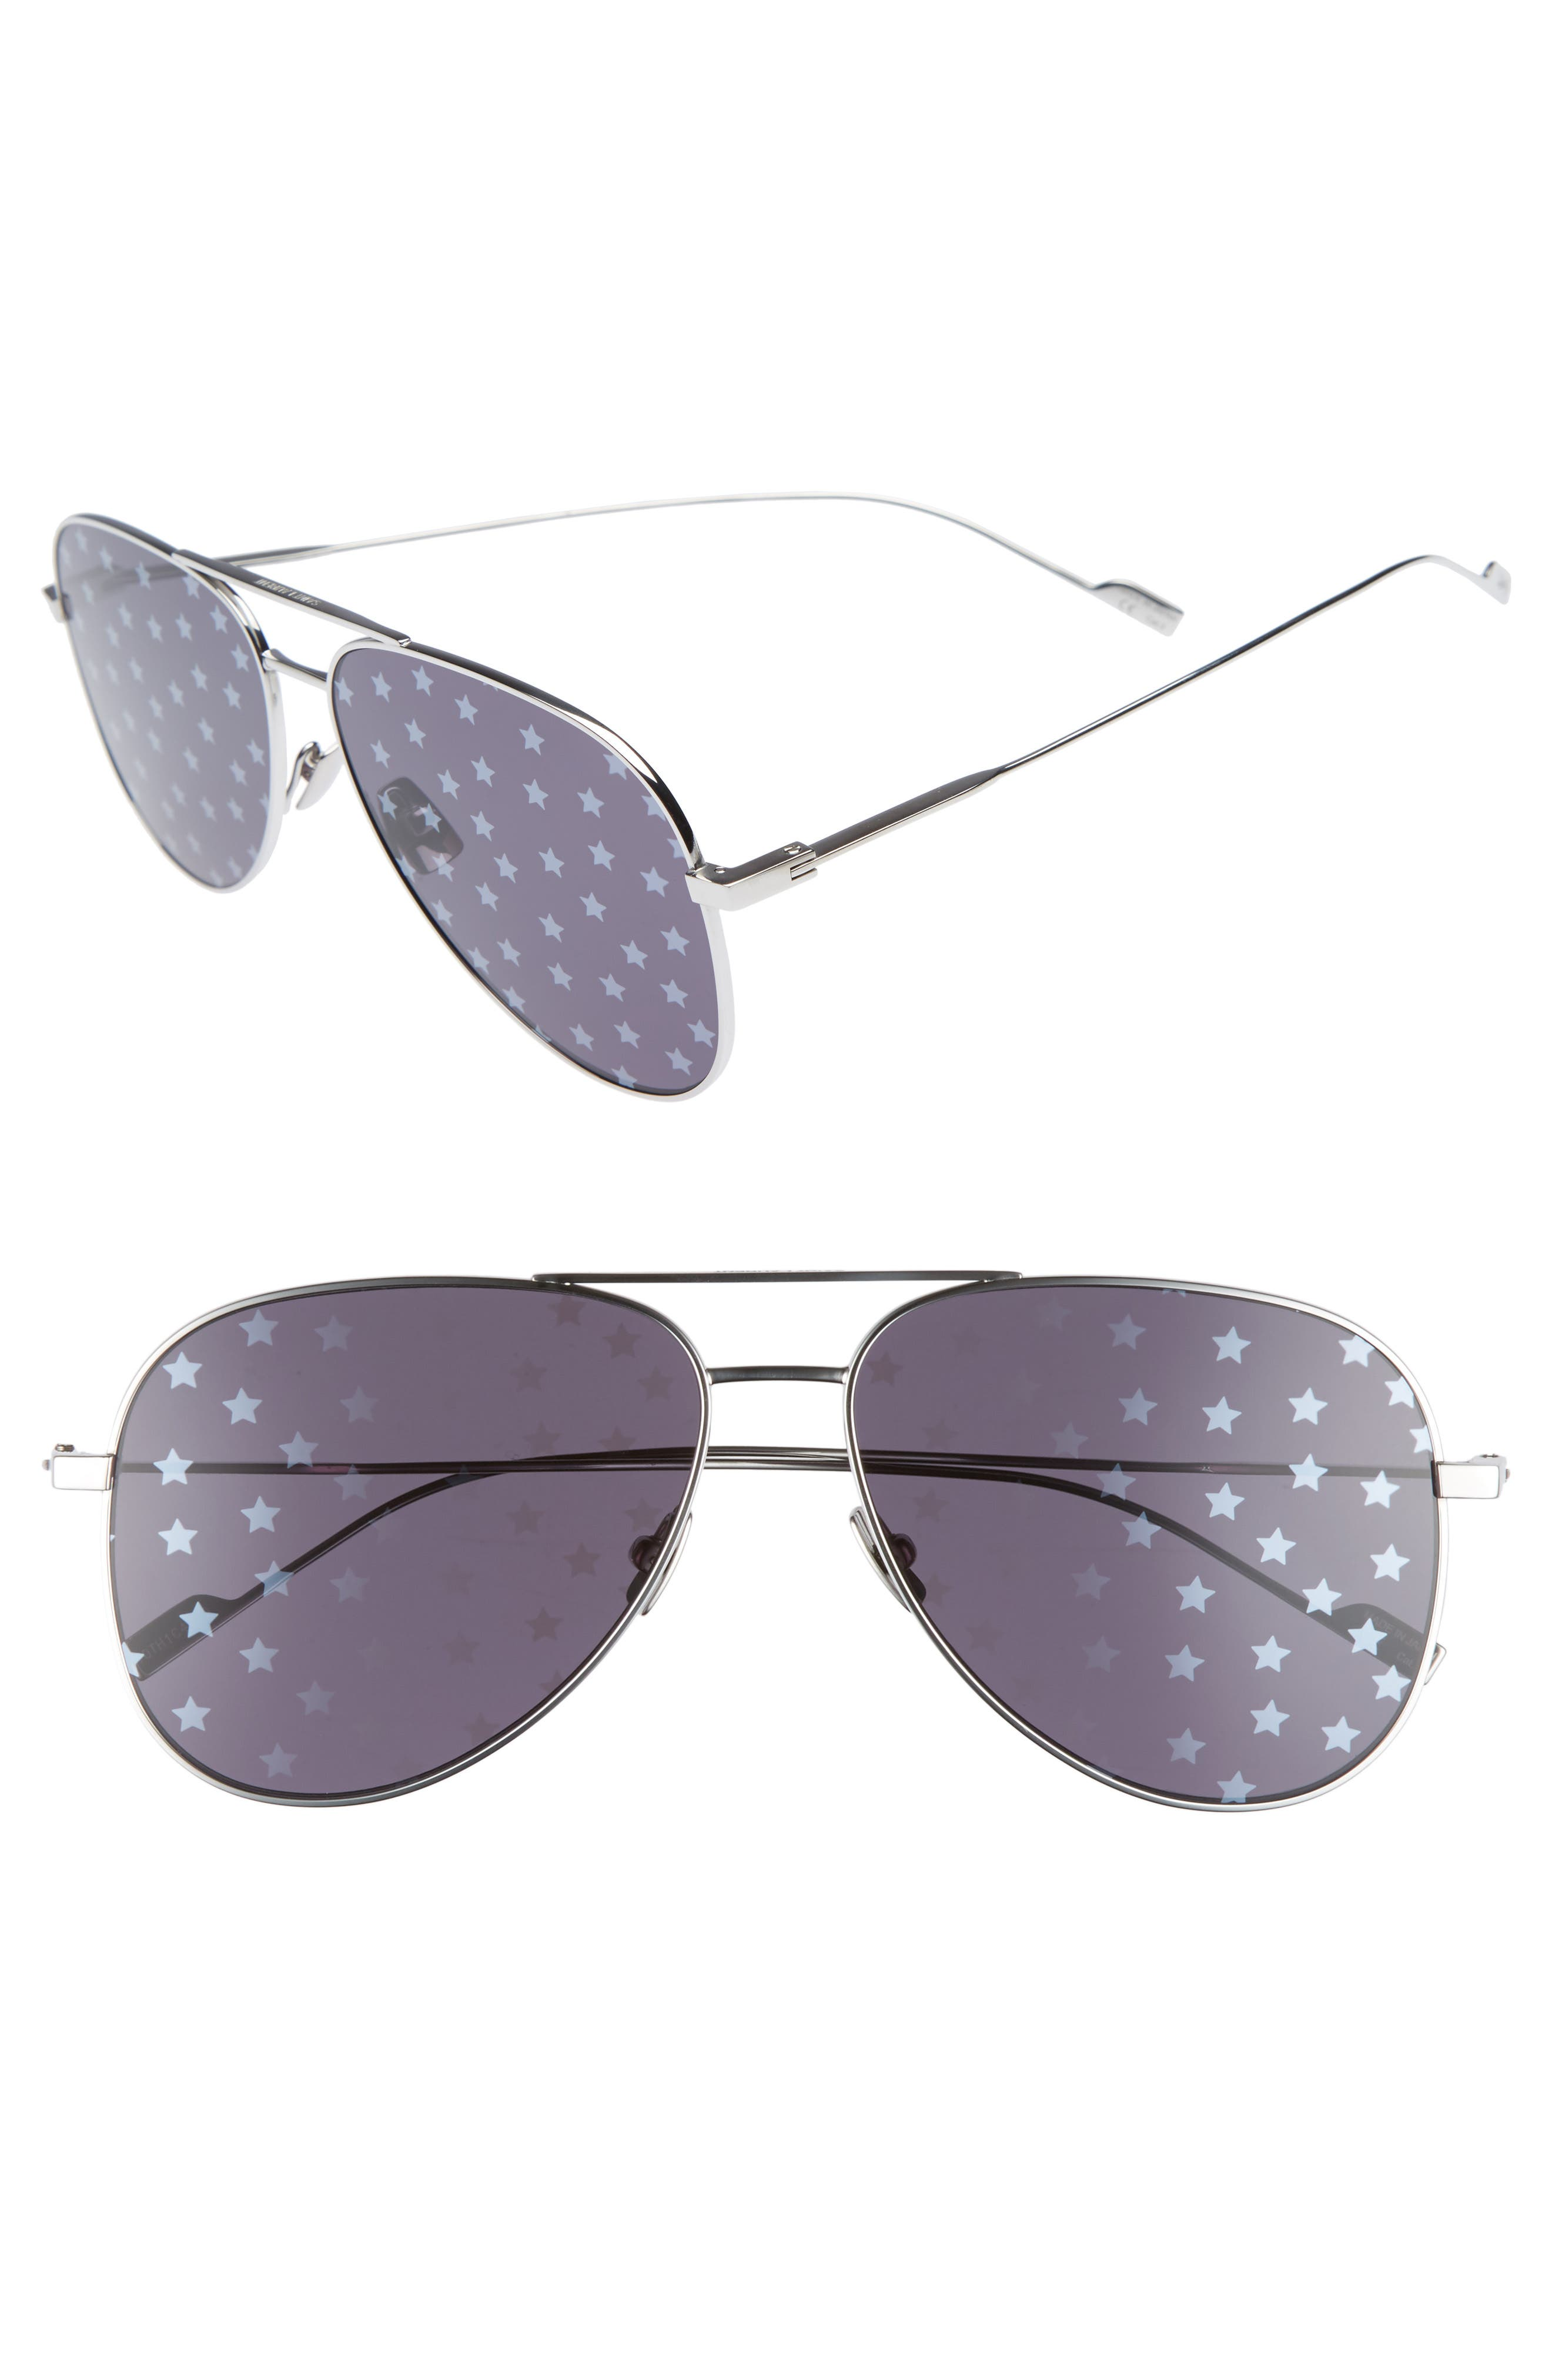 SL193 59mm Aviator Sunglasses,                         Main,                         color,